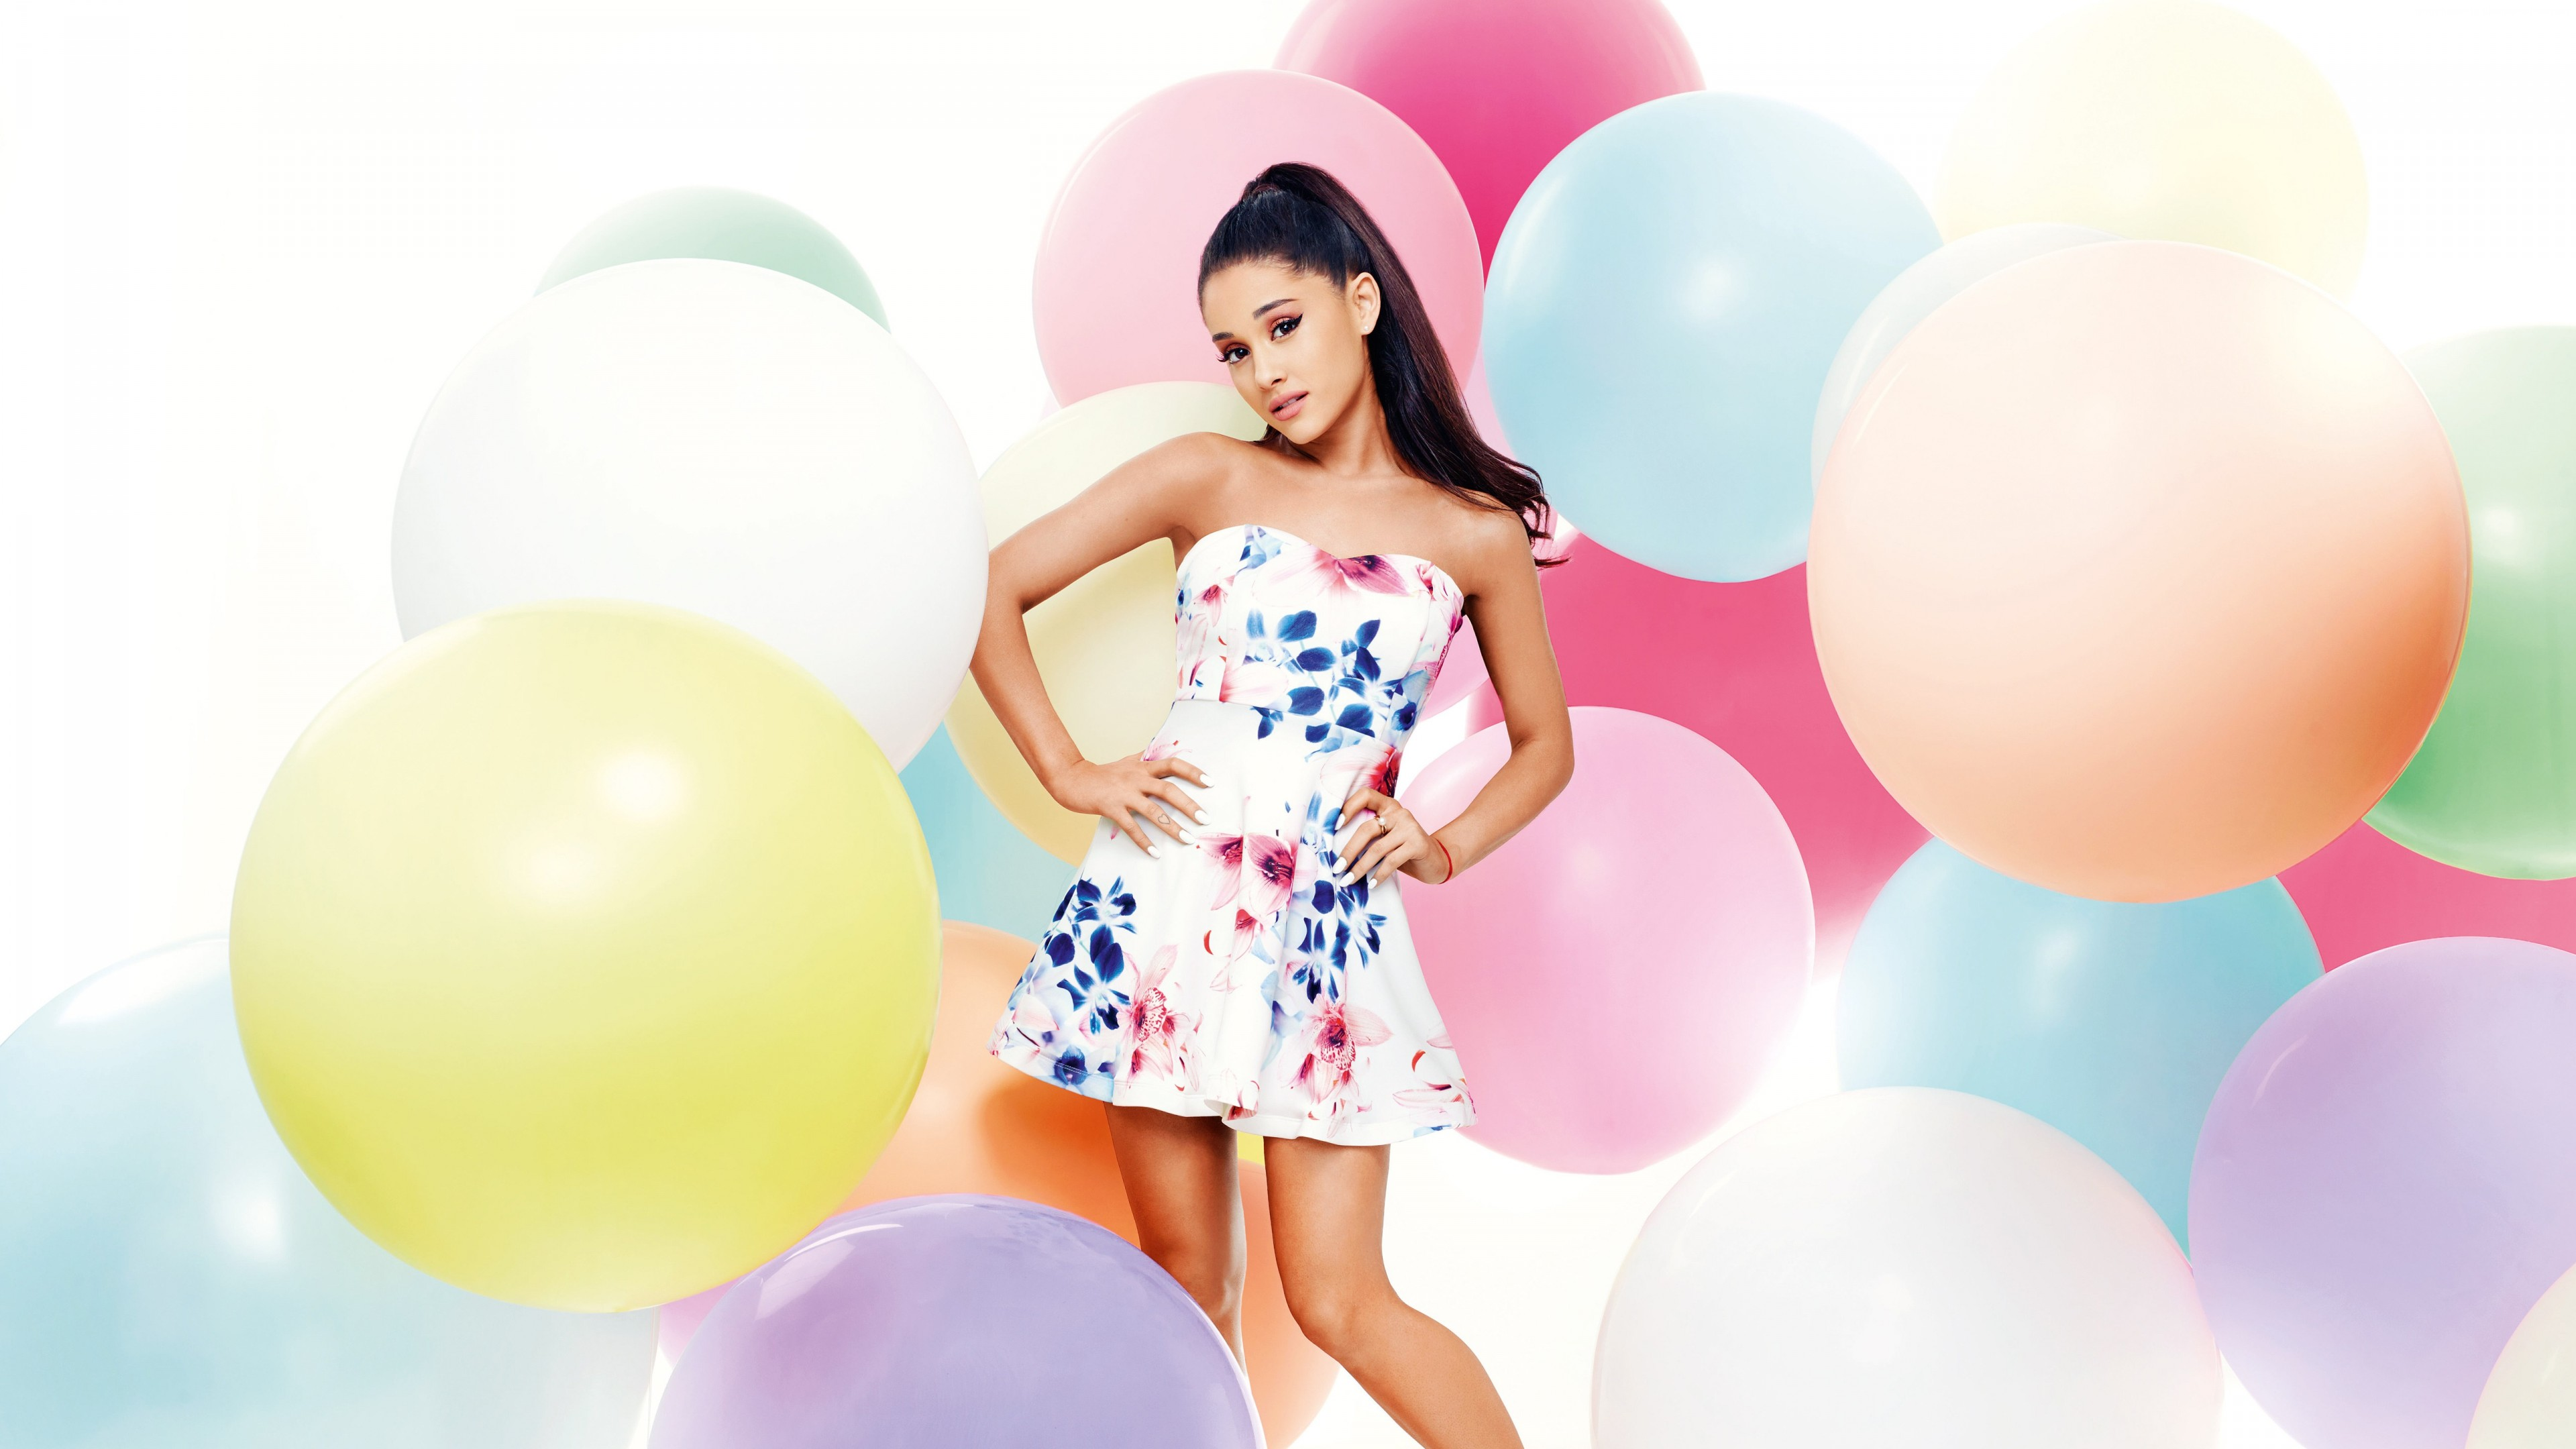 Wallpaper Ariana Grande, Top music artist and bands, singer, actress, Music